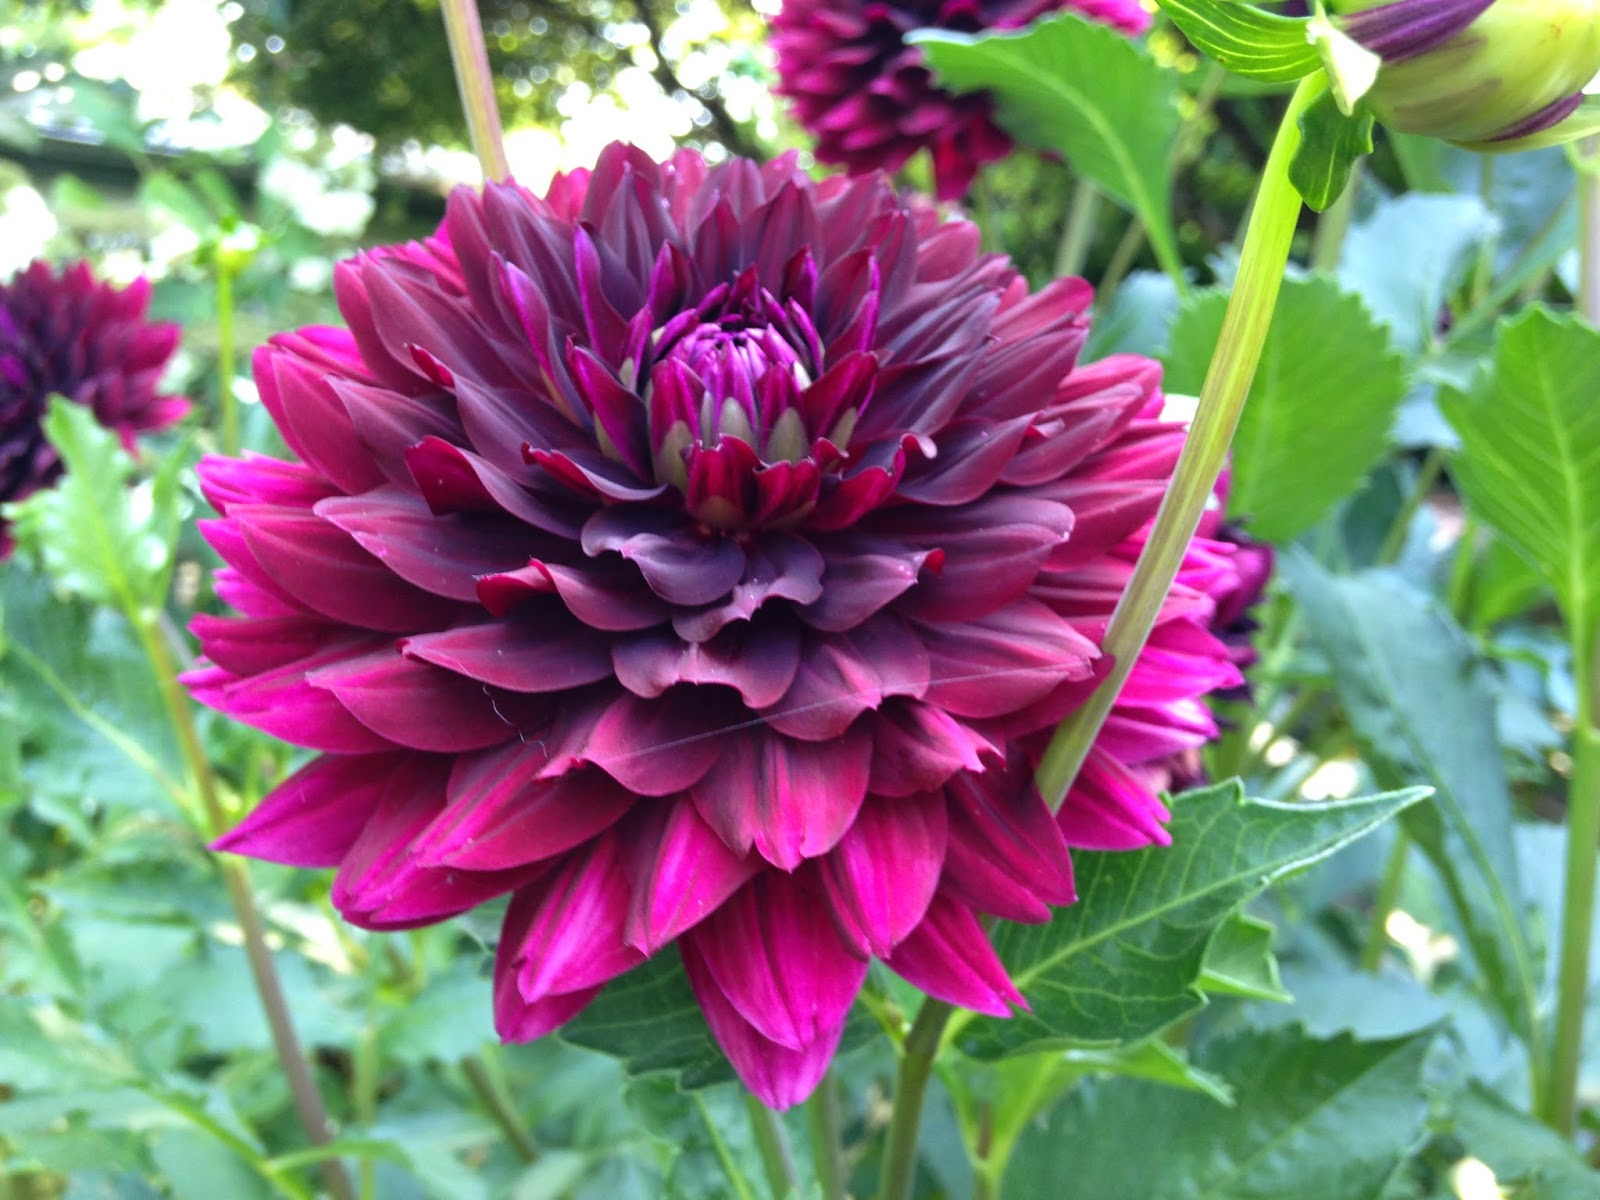 Miss jolie anns kitchen garden for the love of dahlias i just could never do it however for certain dahlias are in my top 10 favorite flowers they are just so beautiful in the summer garden izmirmasajfo